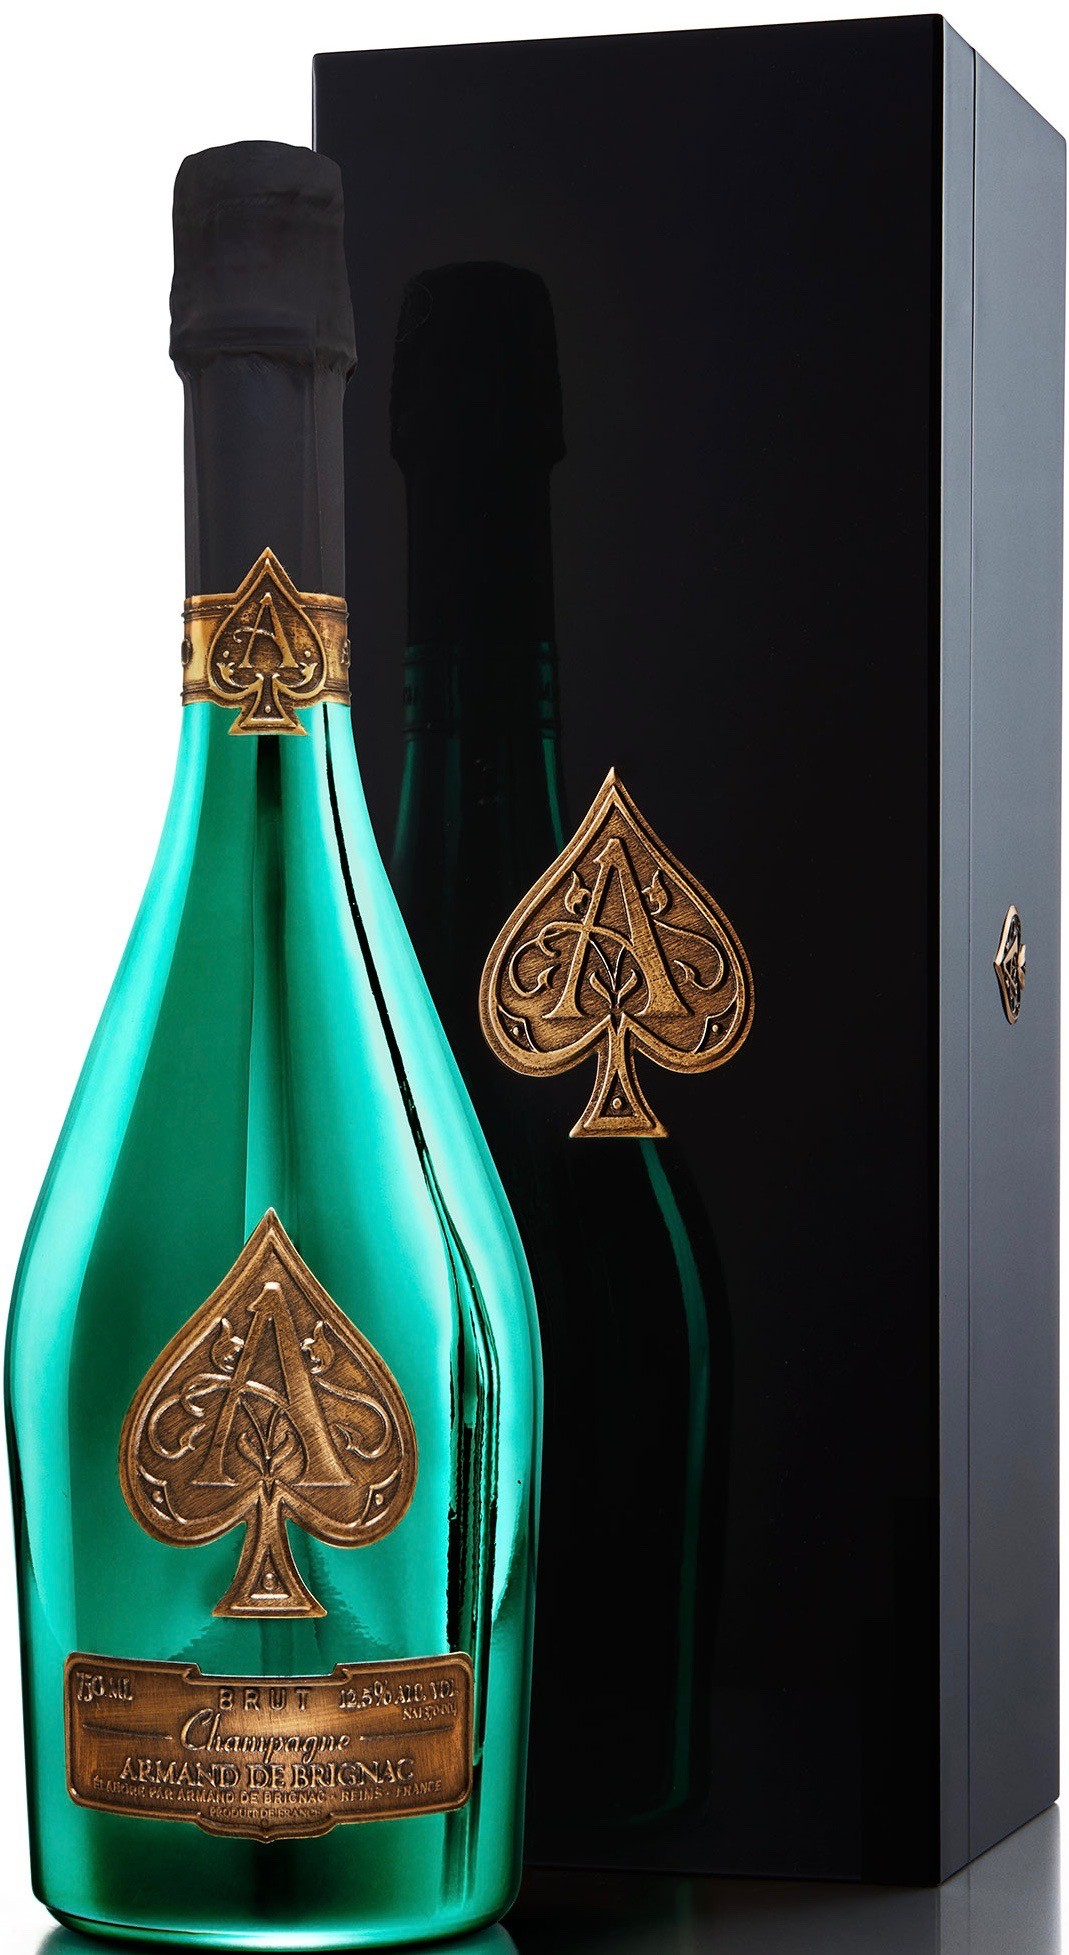 champagne-armand-de-brignac-brut-green-limited-edition-masters-golf-shop-online-75cl